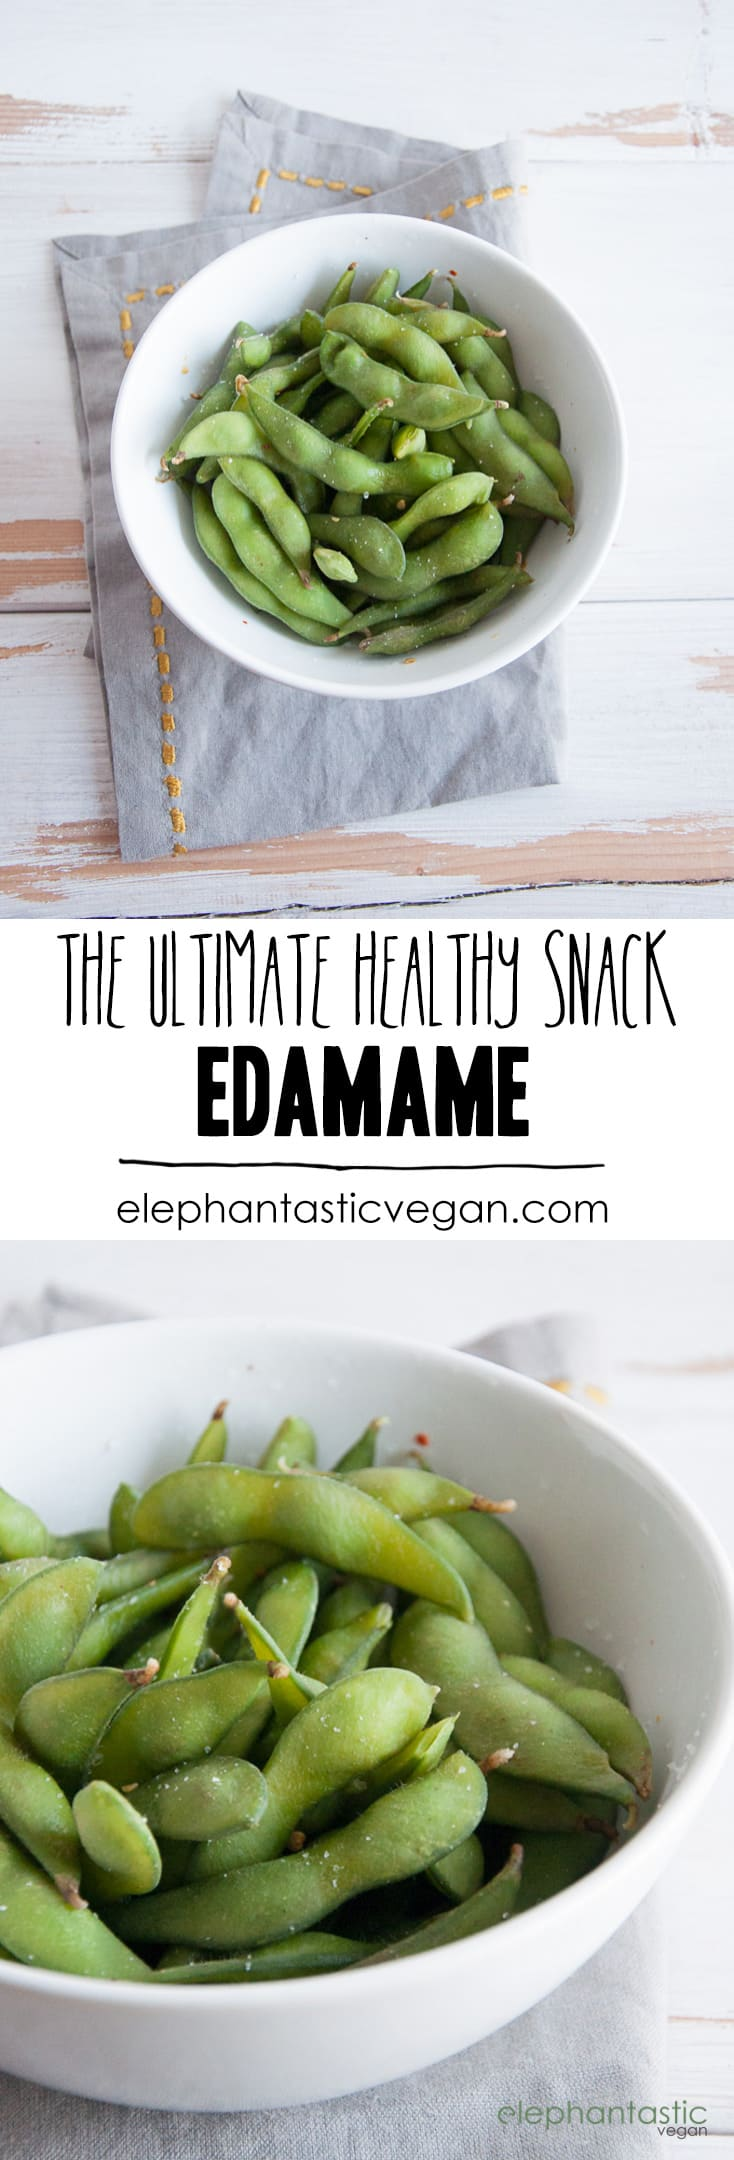 Basic Edamame - The Ultimate Healthy Snack   ElephantasticVegan.com #edamame #vegan #snack #healthy #soybean